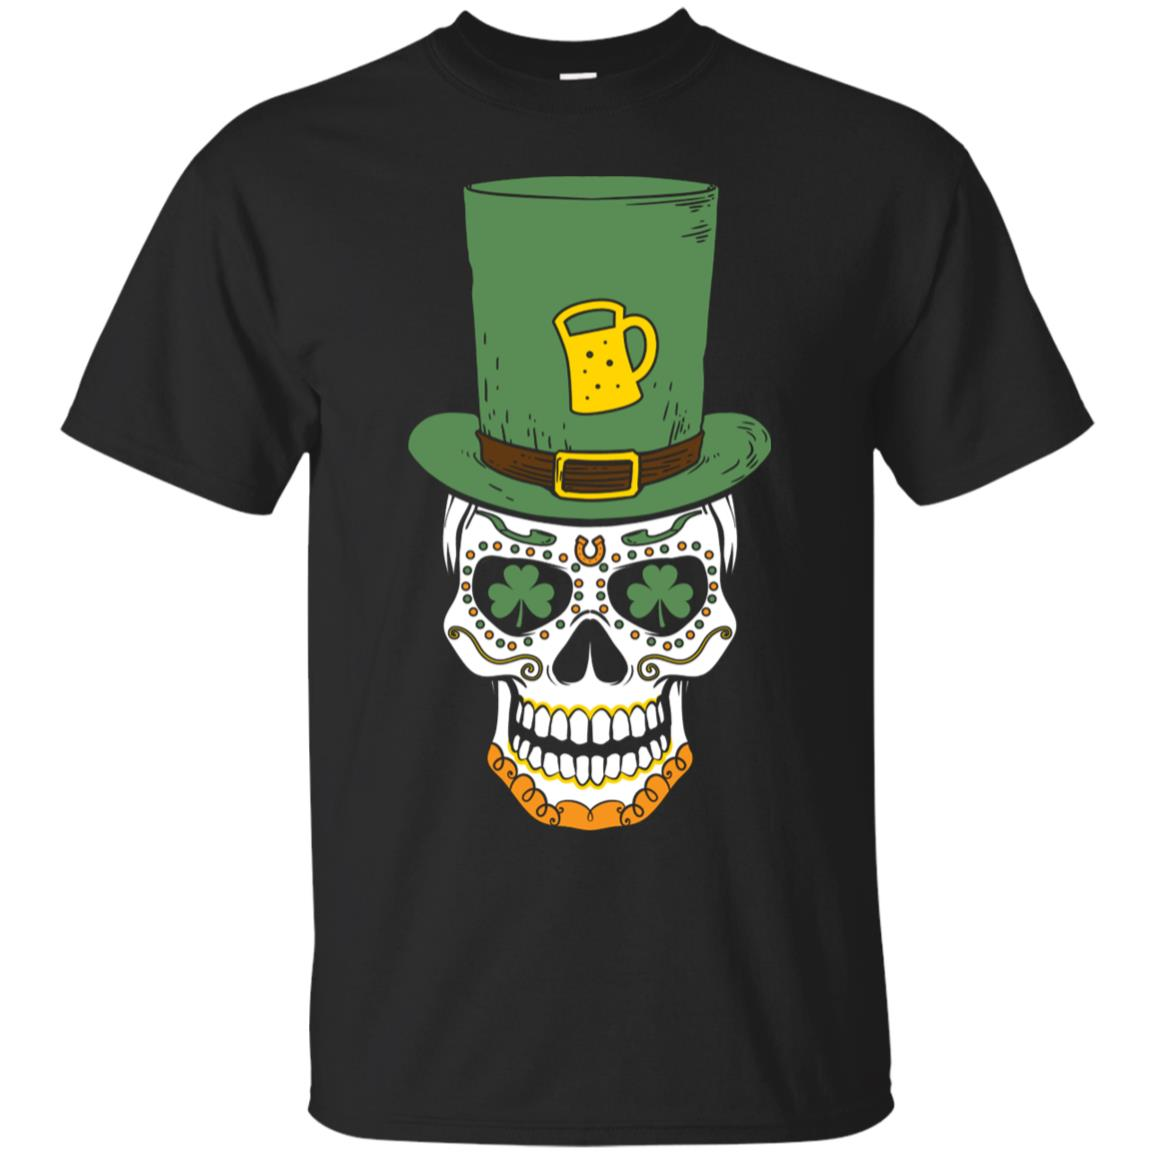 St Patricks Day Sugar Skull Shirt - Paddys Day Shirts 99promocode